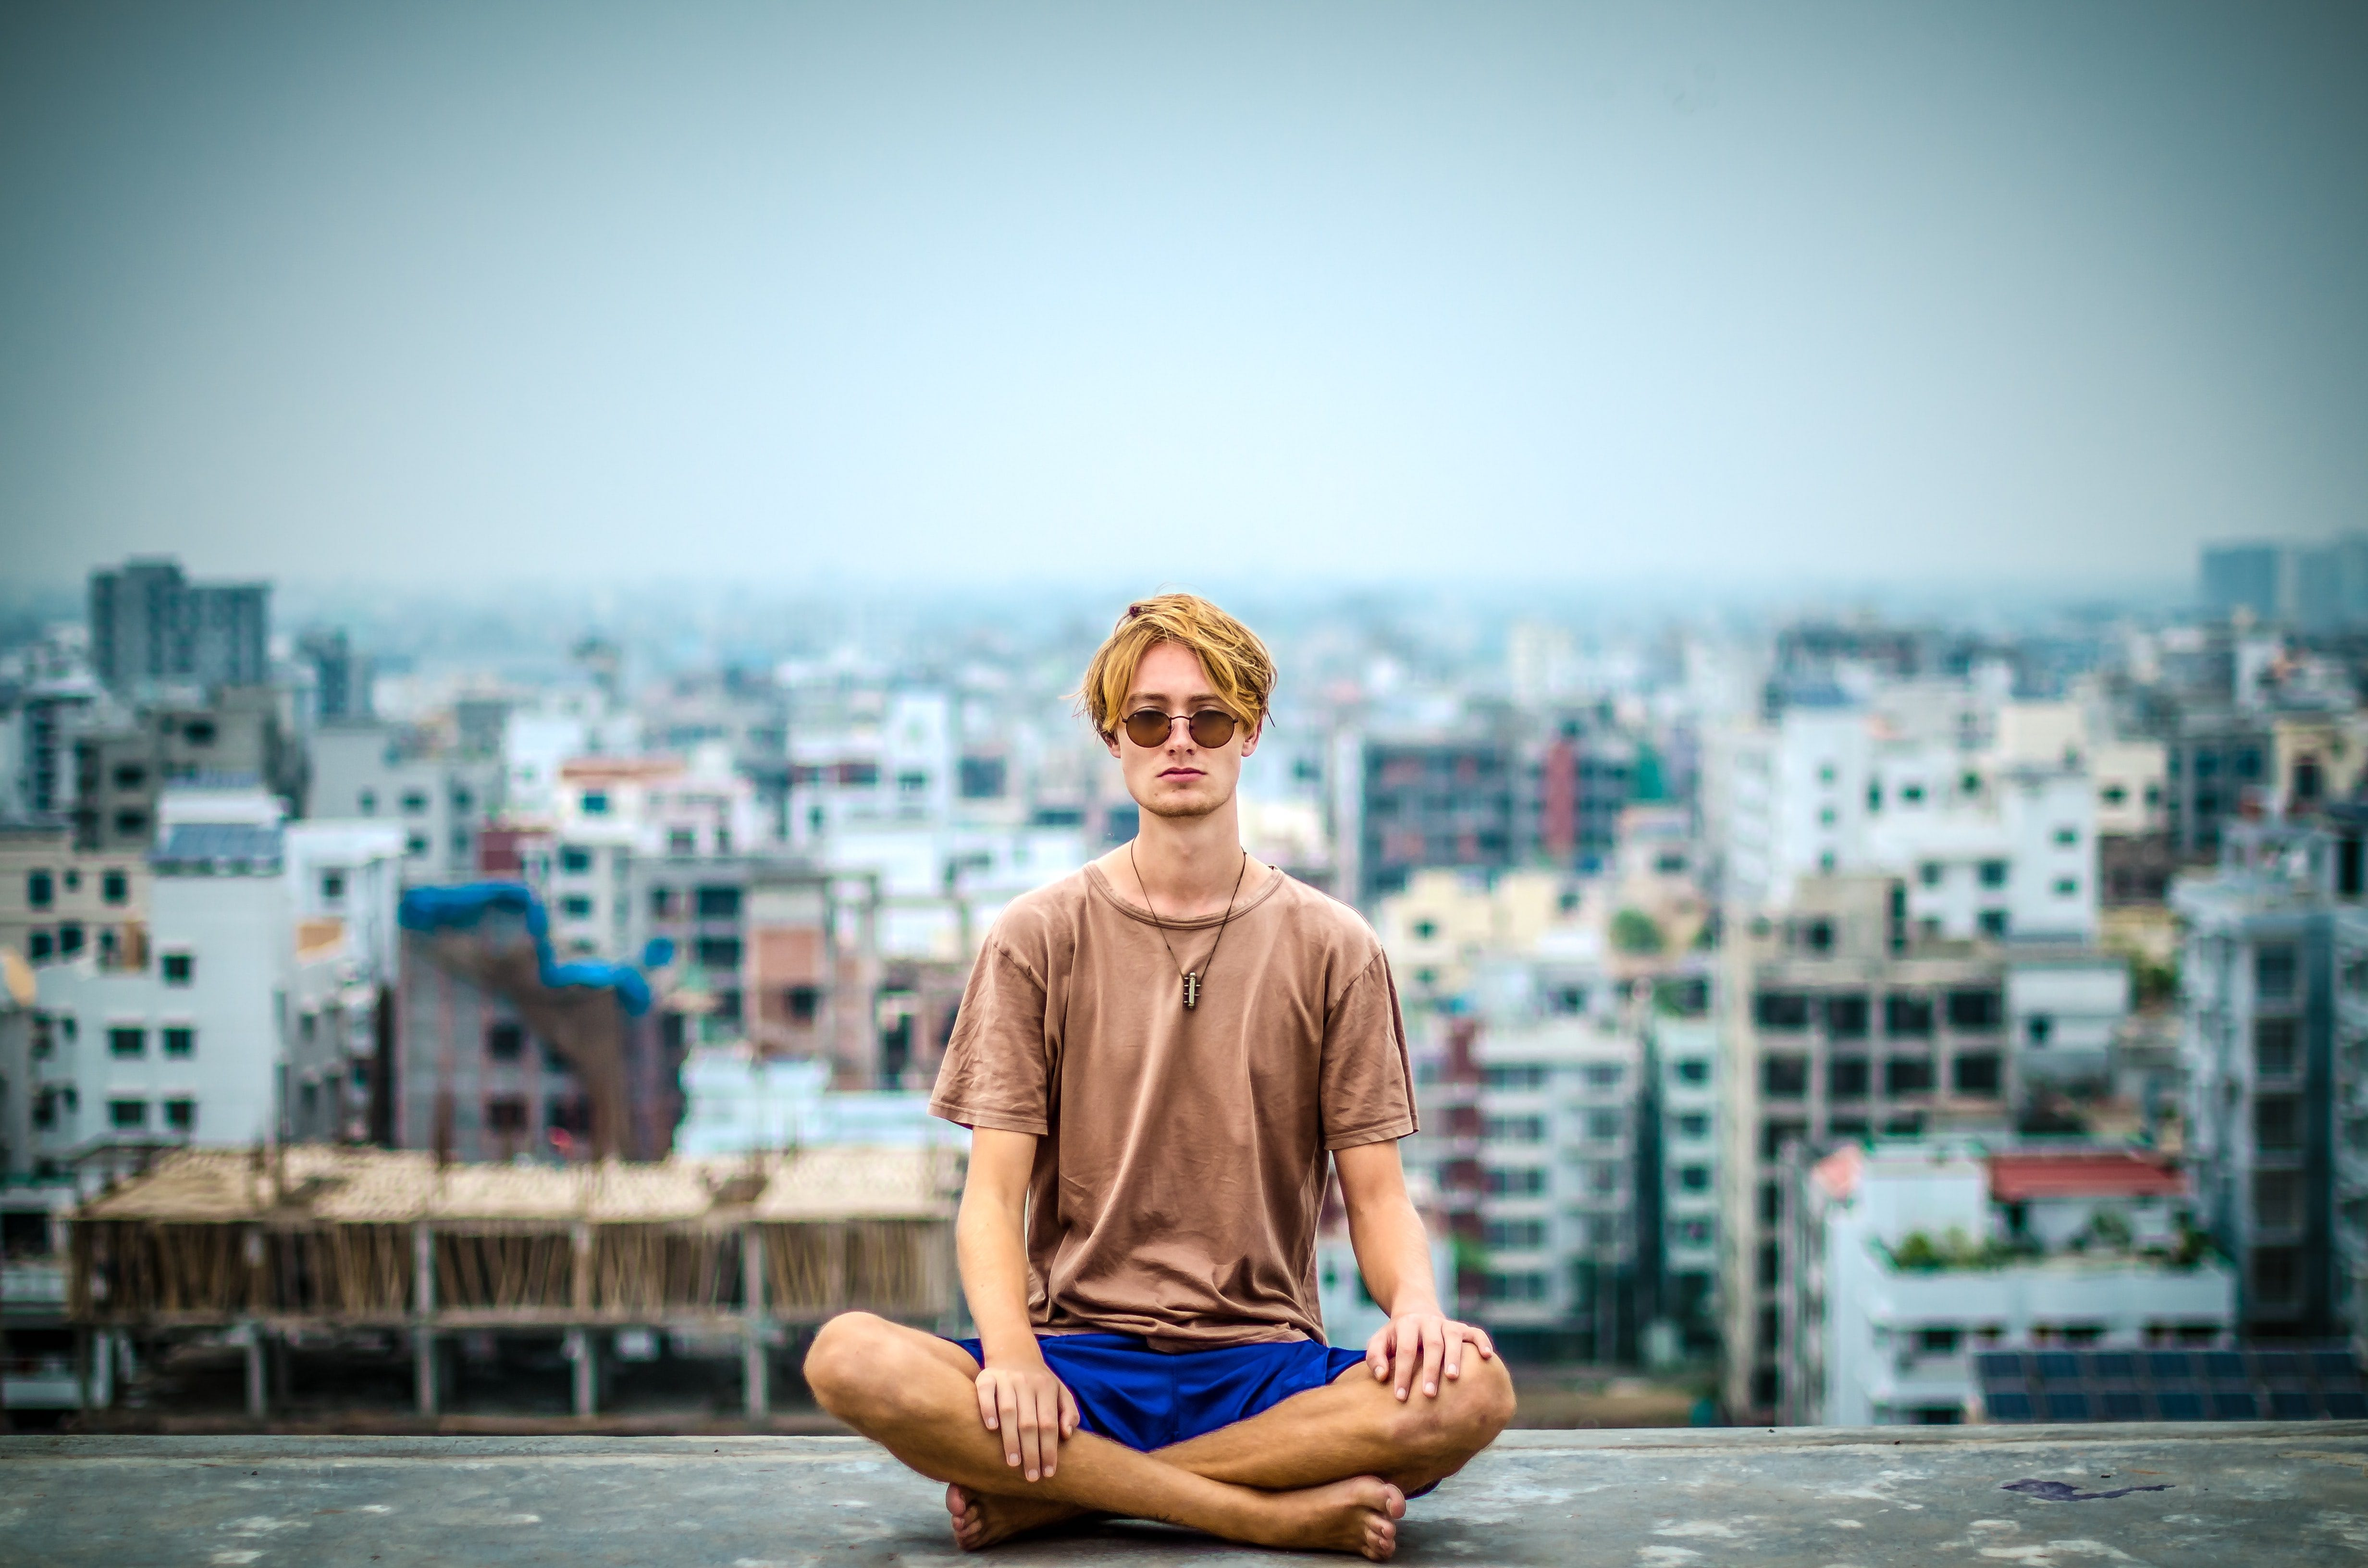 Man meditates on a rooftop against a cityscape backdrop